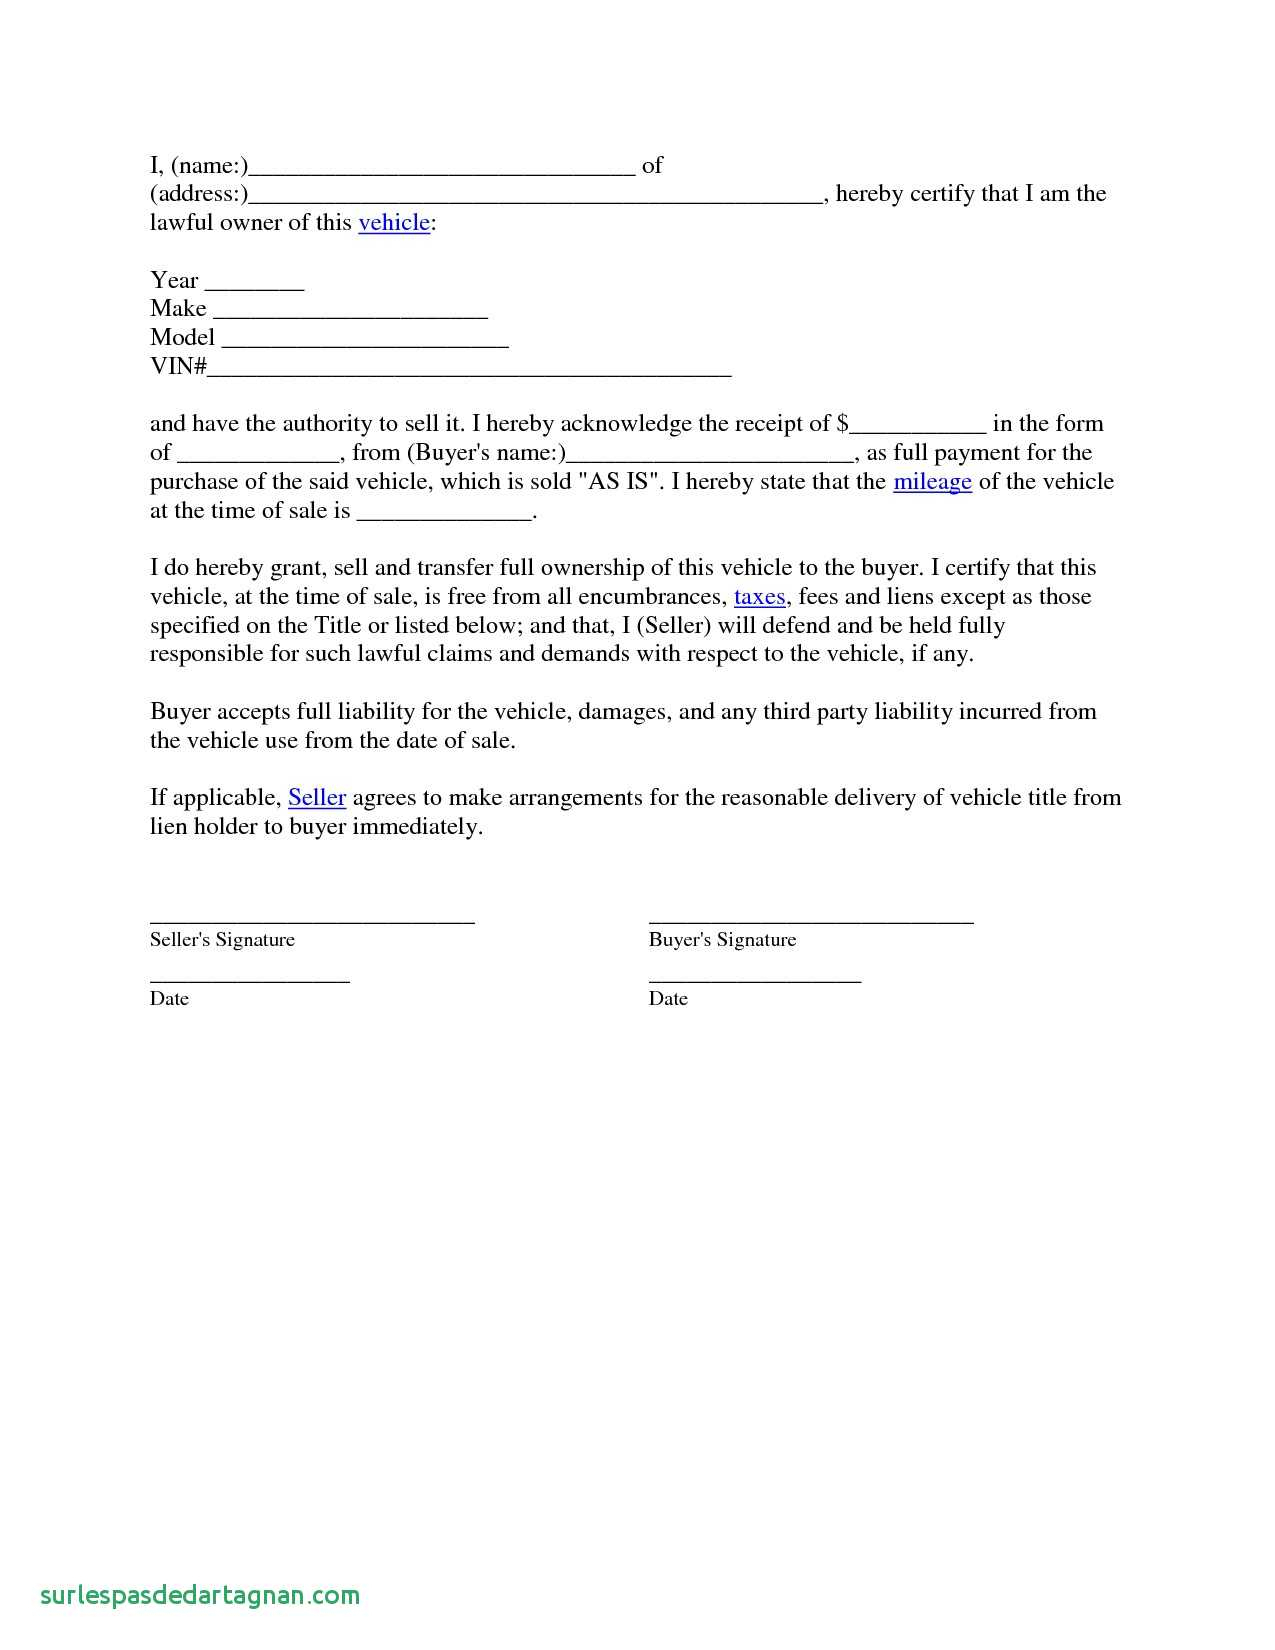 third party authorization letter template Collection-letter of agreement template between two parties vehicle sales agreement beautiful toyota proace long sel 2 0d 120 letter agreement template between two parties 20s 13-k